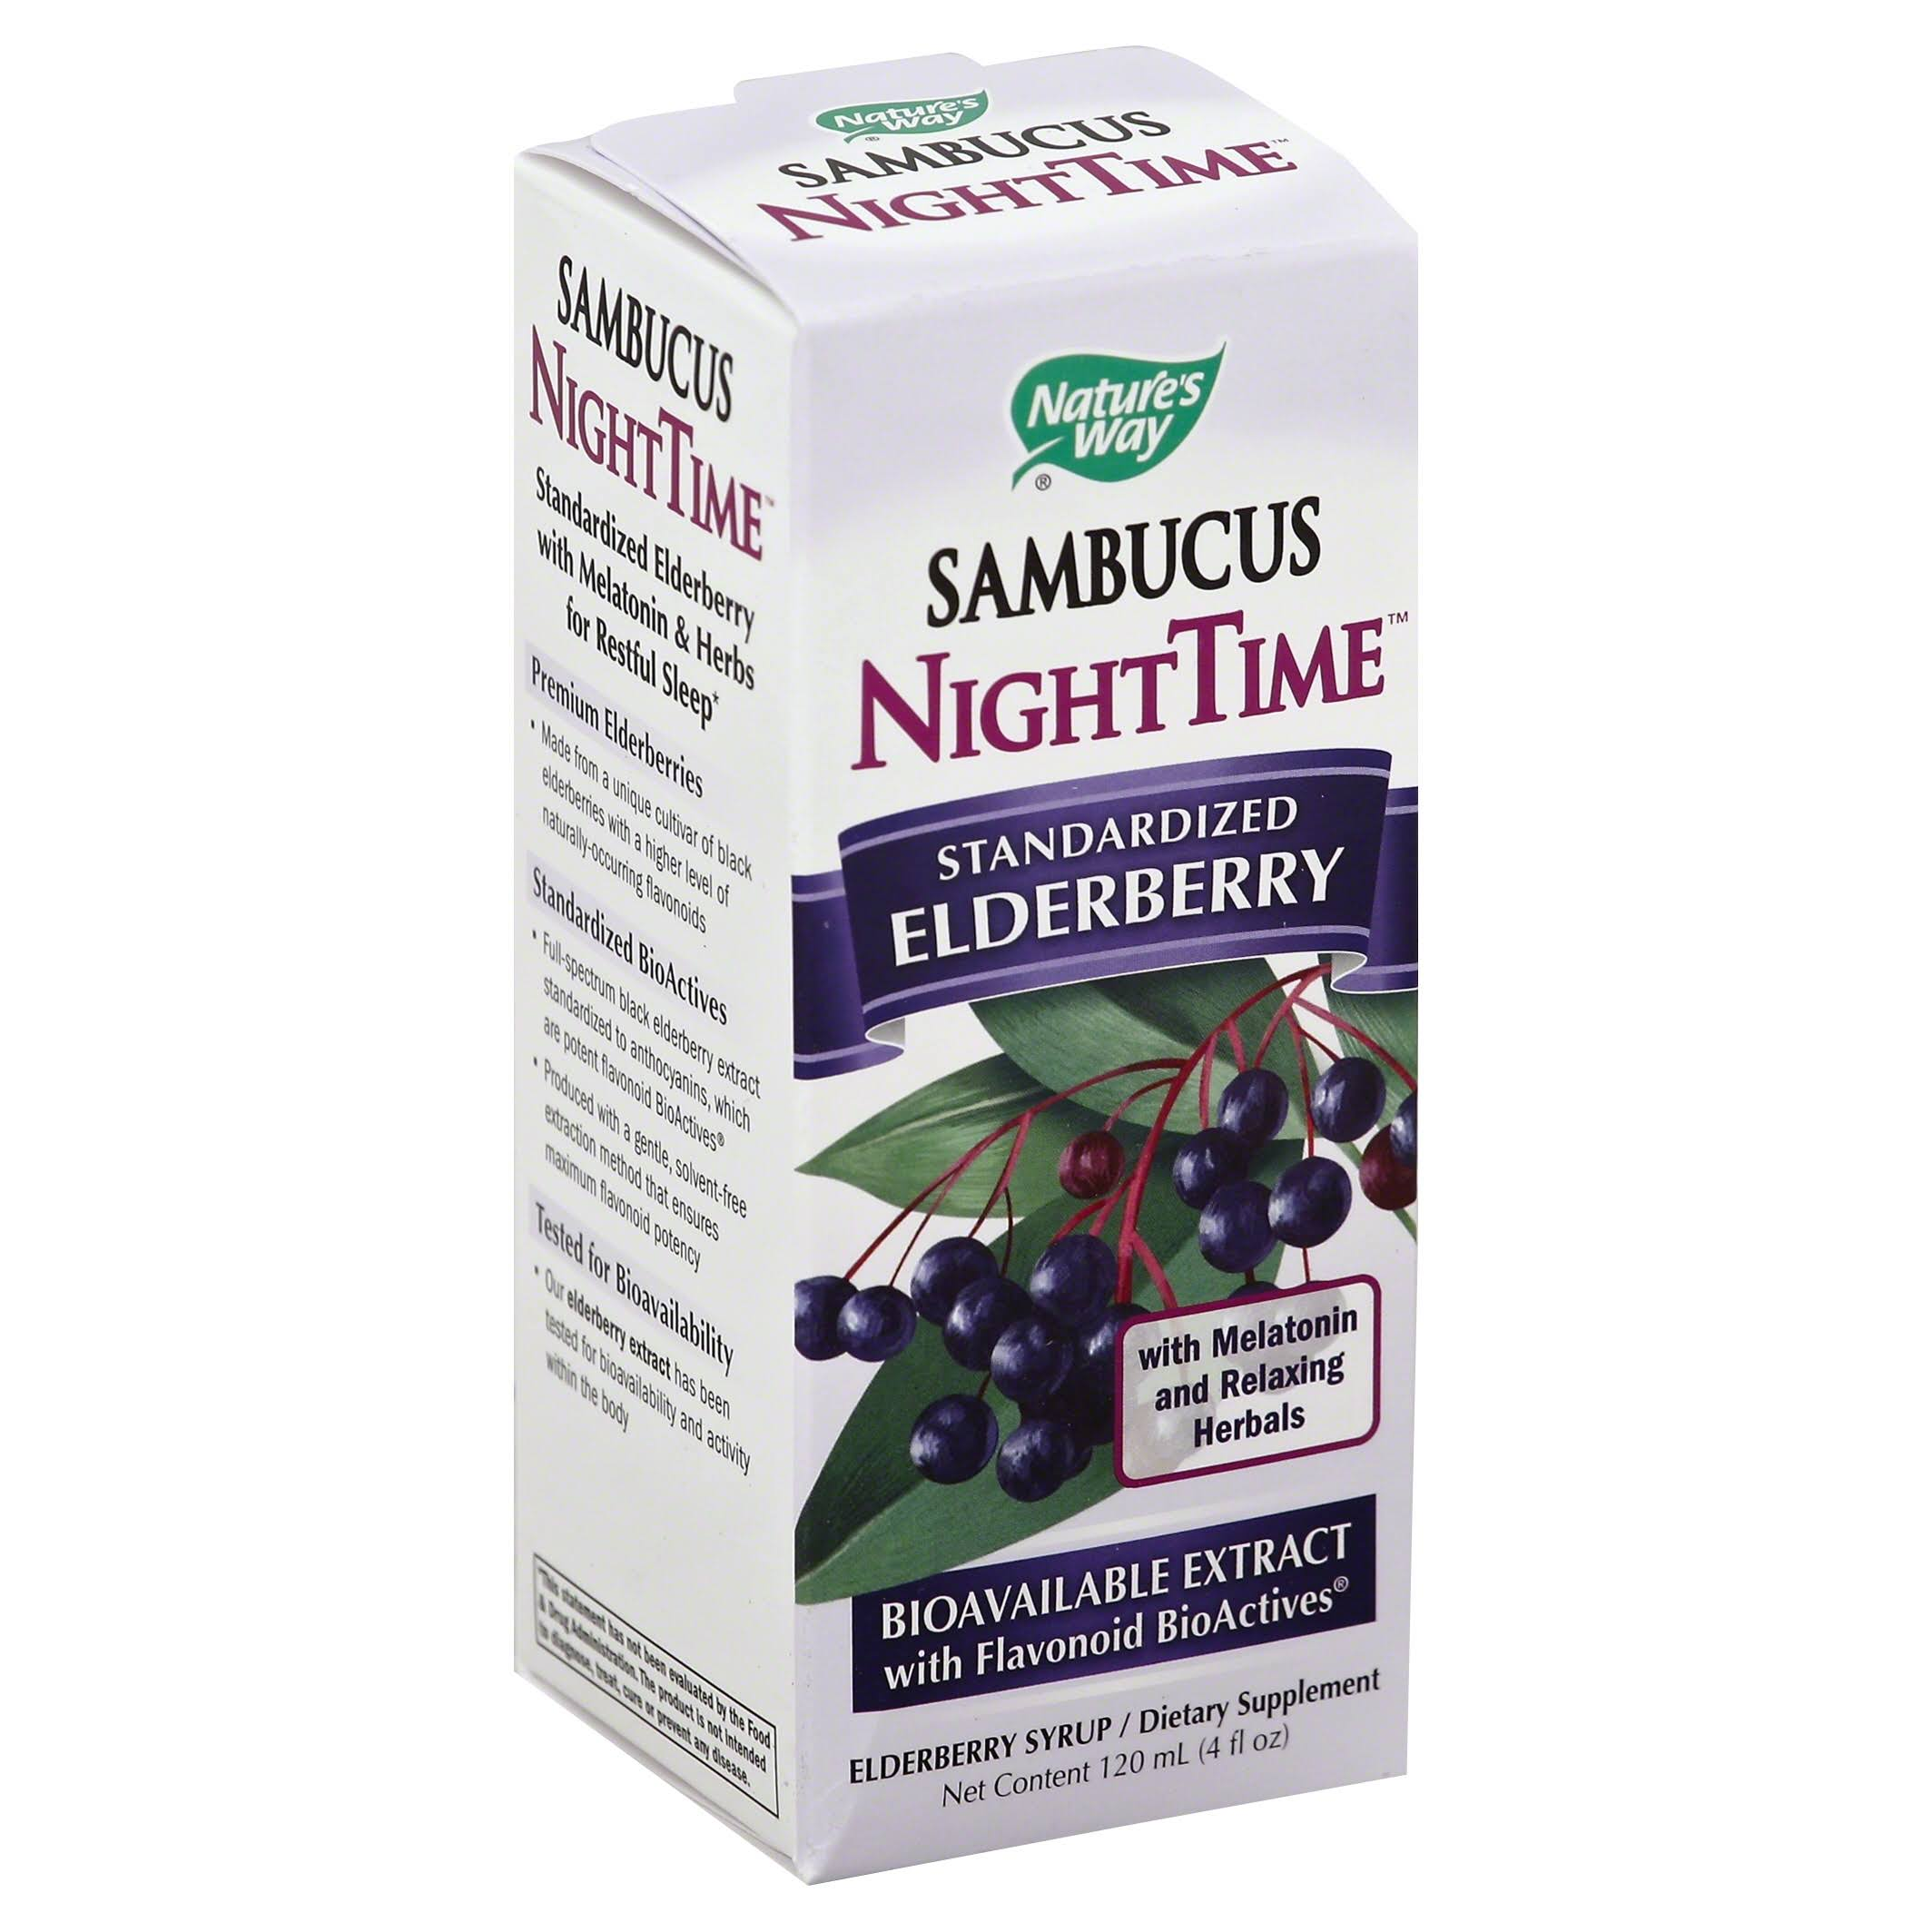 Nature's Way Sambucus Nighttime Standardized Elderberry Liquid - 4 oz